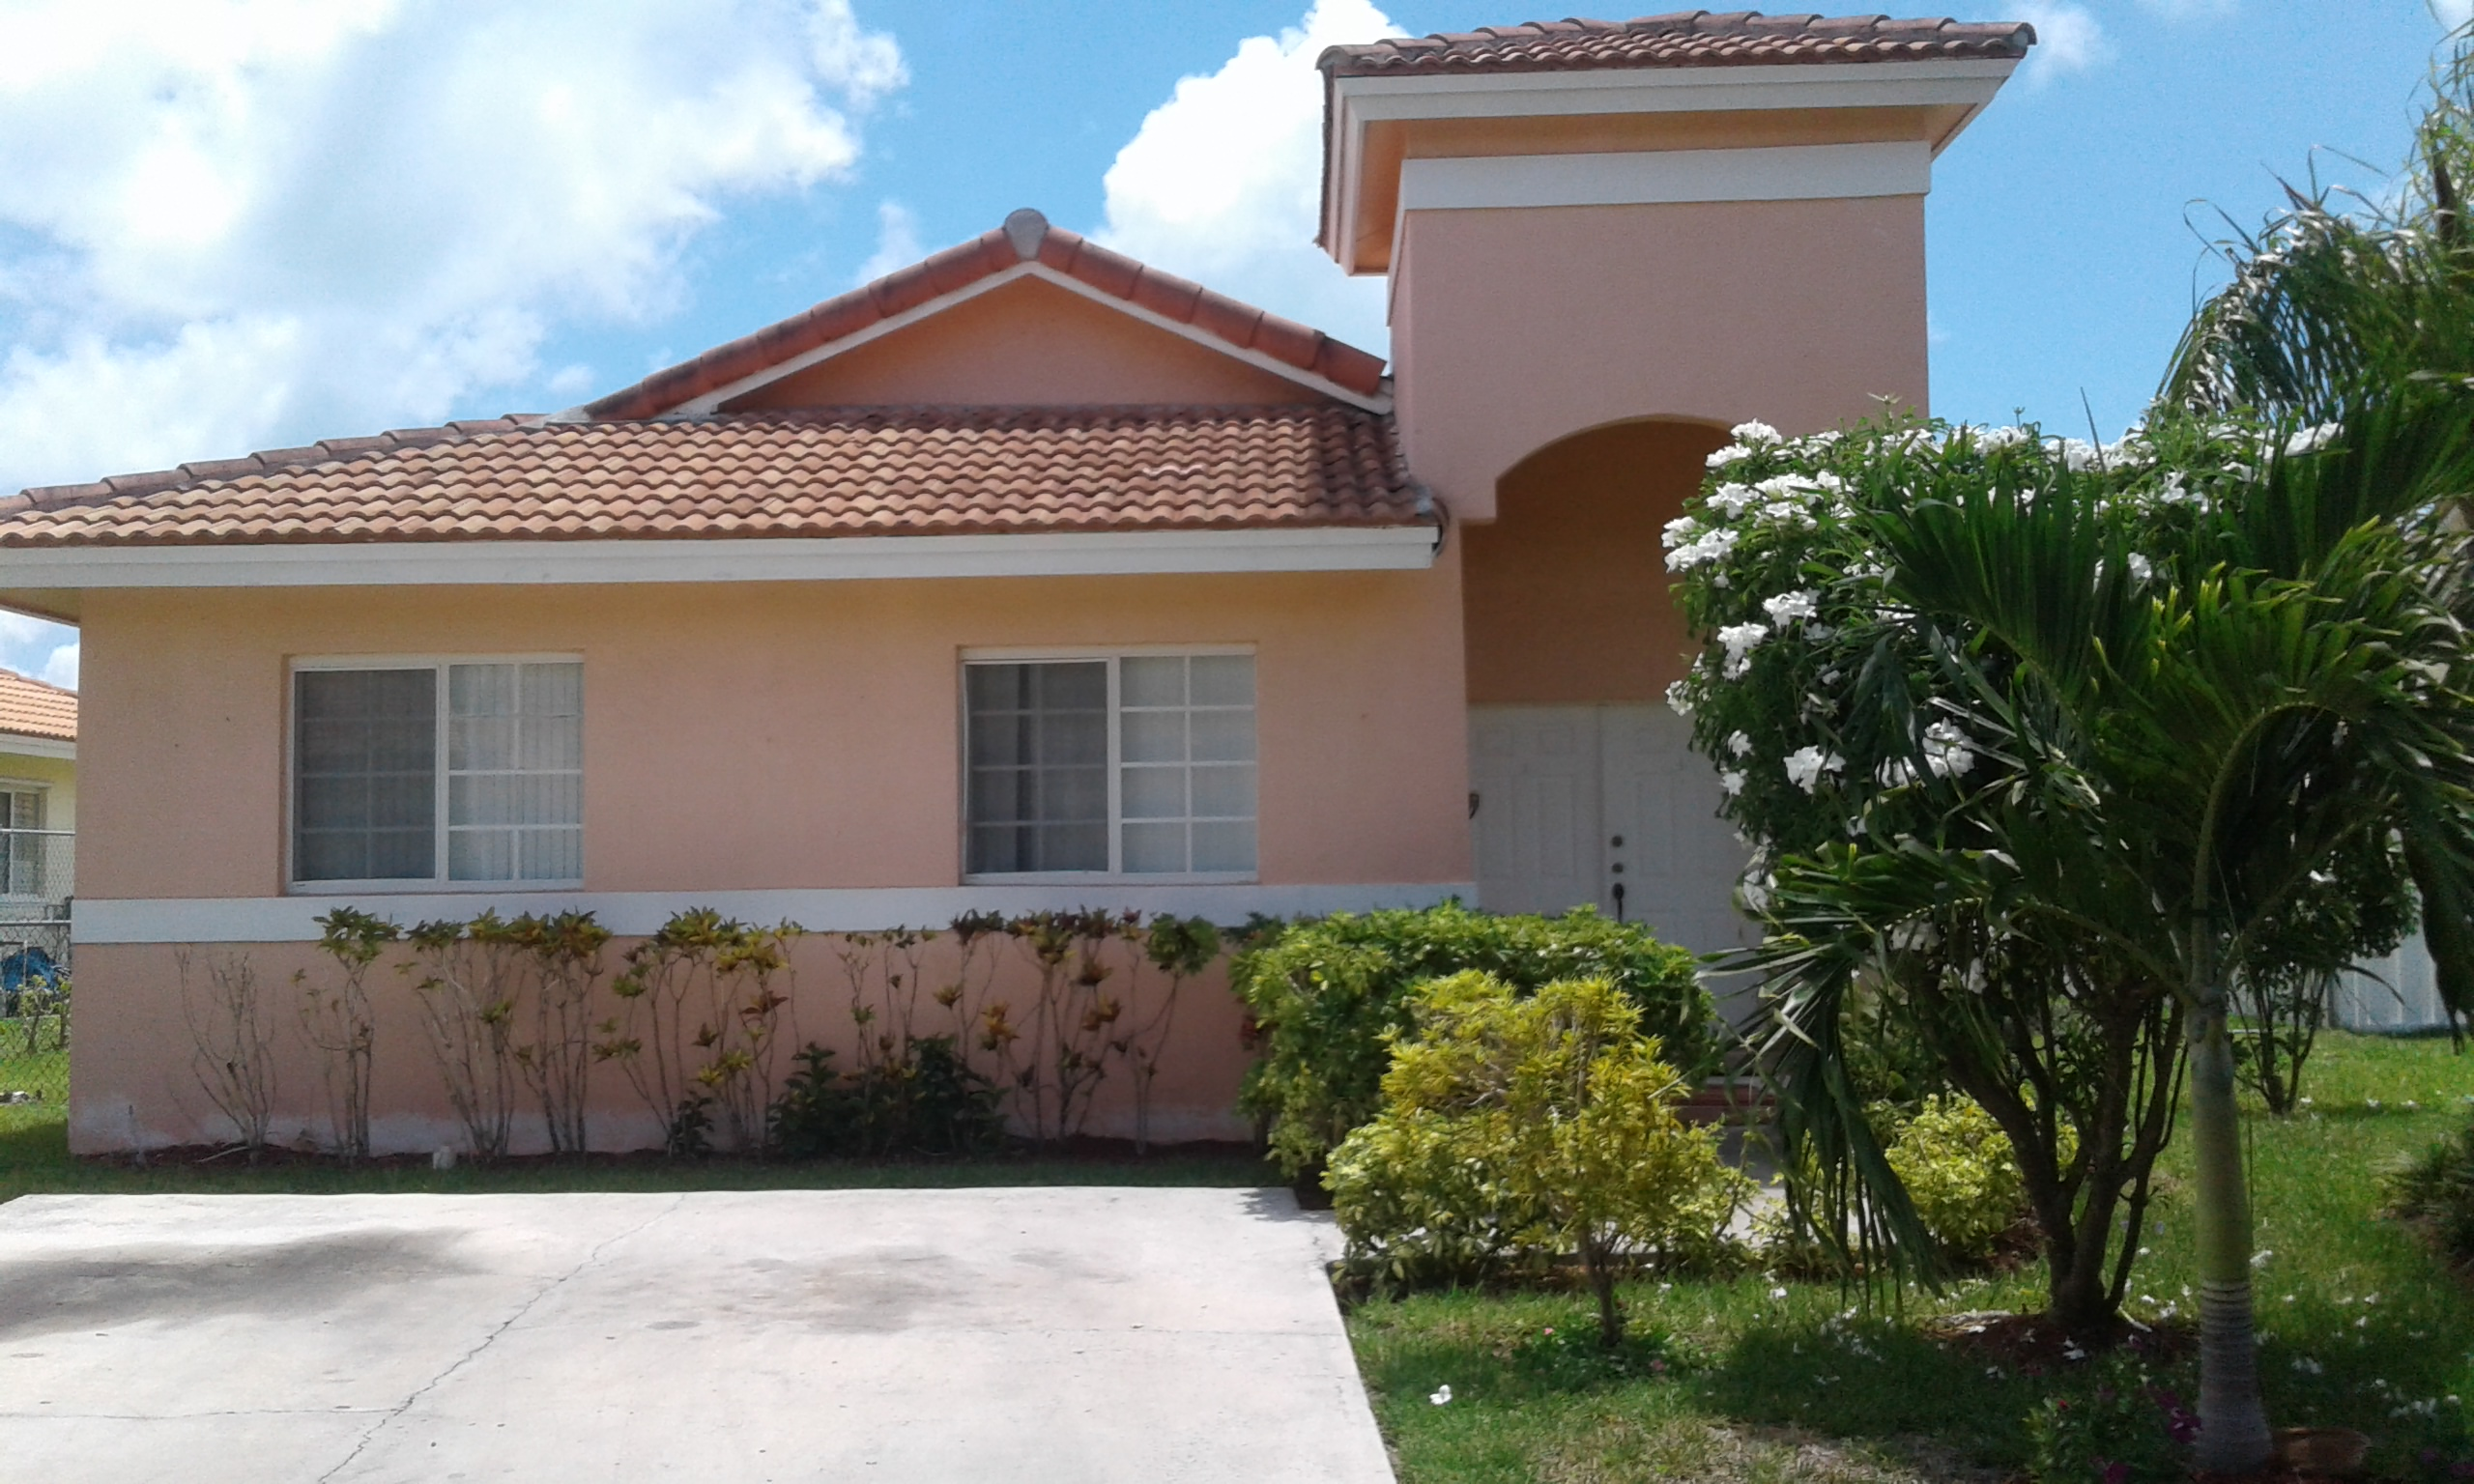 Single Family Home for Rent at # 37 Crystal Close West Treasure Cove Treasure Cove, Yamacraw, Nassau And Paradise Island Bahamas